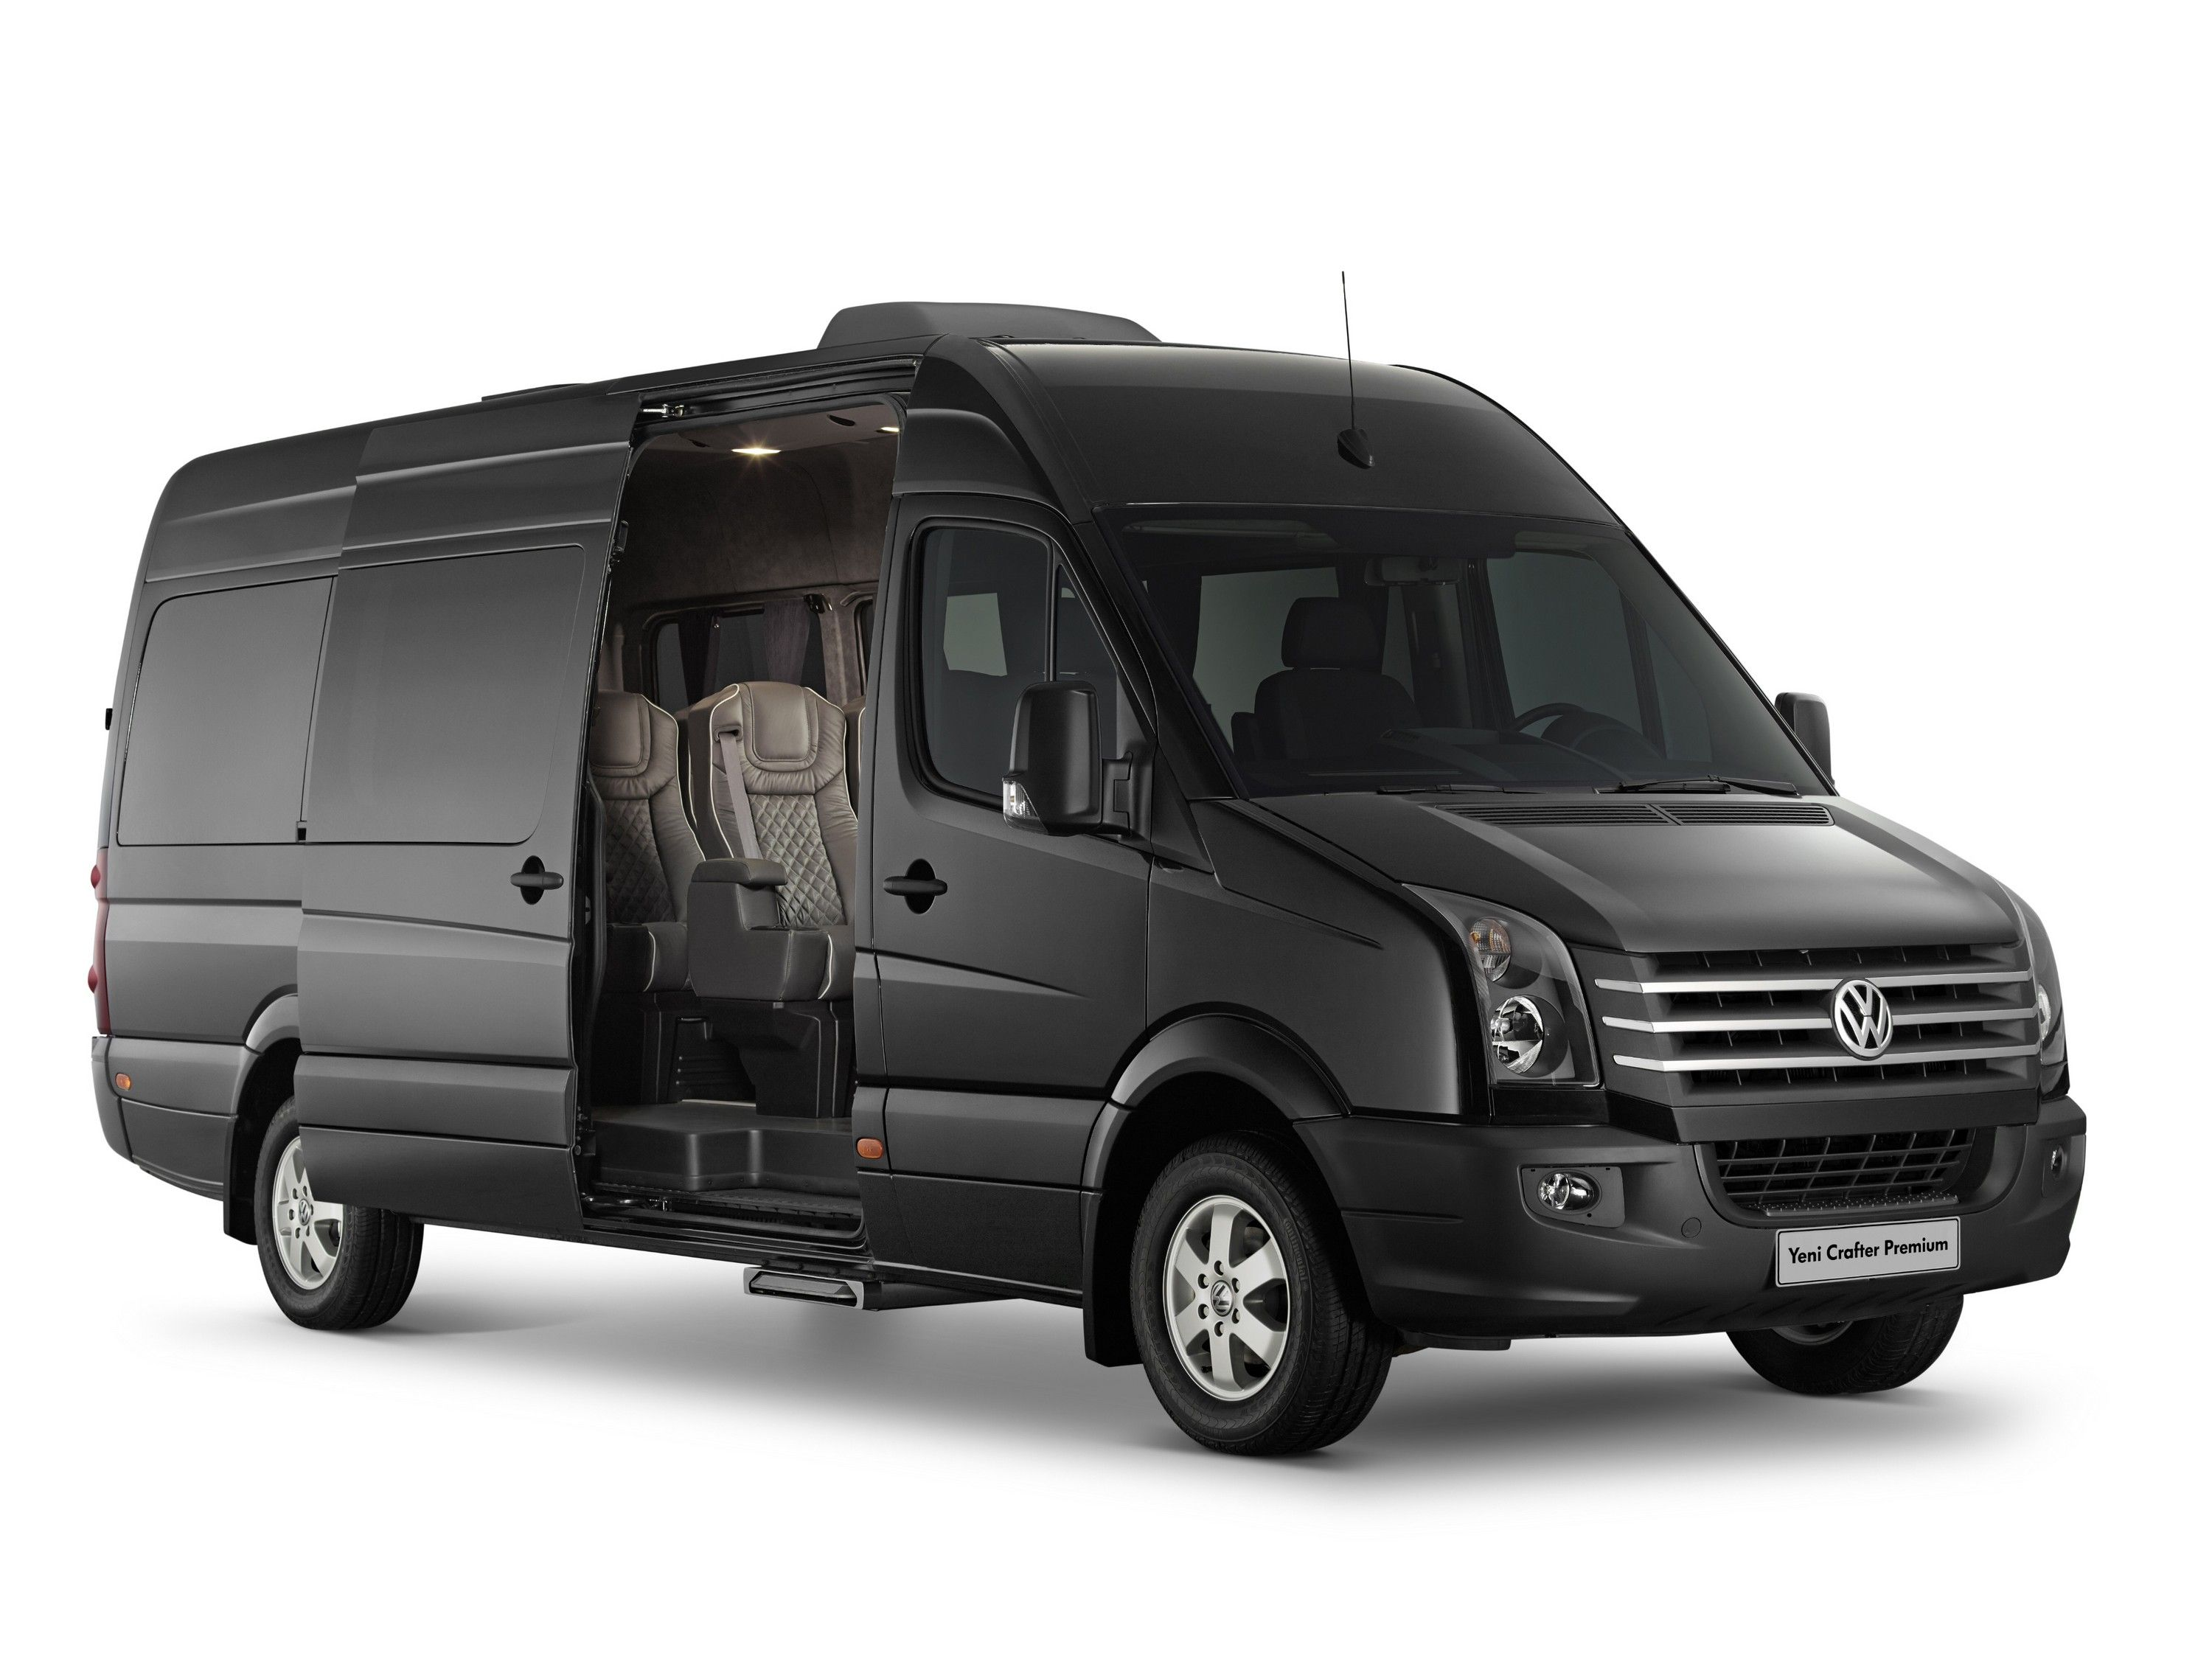 volkswagen crafter premium 39 2015 volkswagen crafter pinterest volkswagen and cars. Black Bedroom Furniture Sets. Home Design Ideas